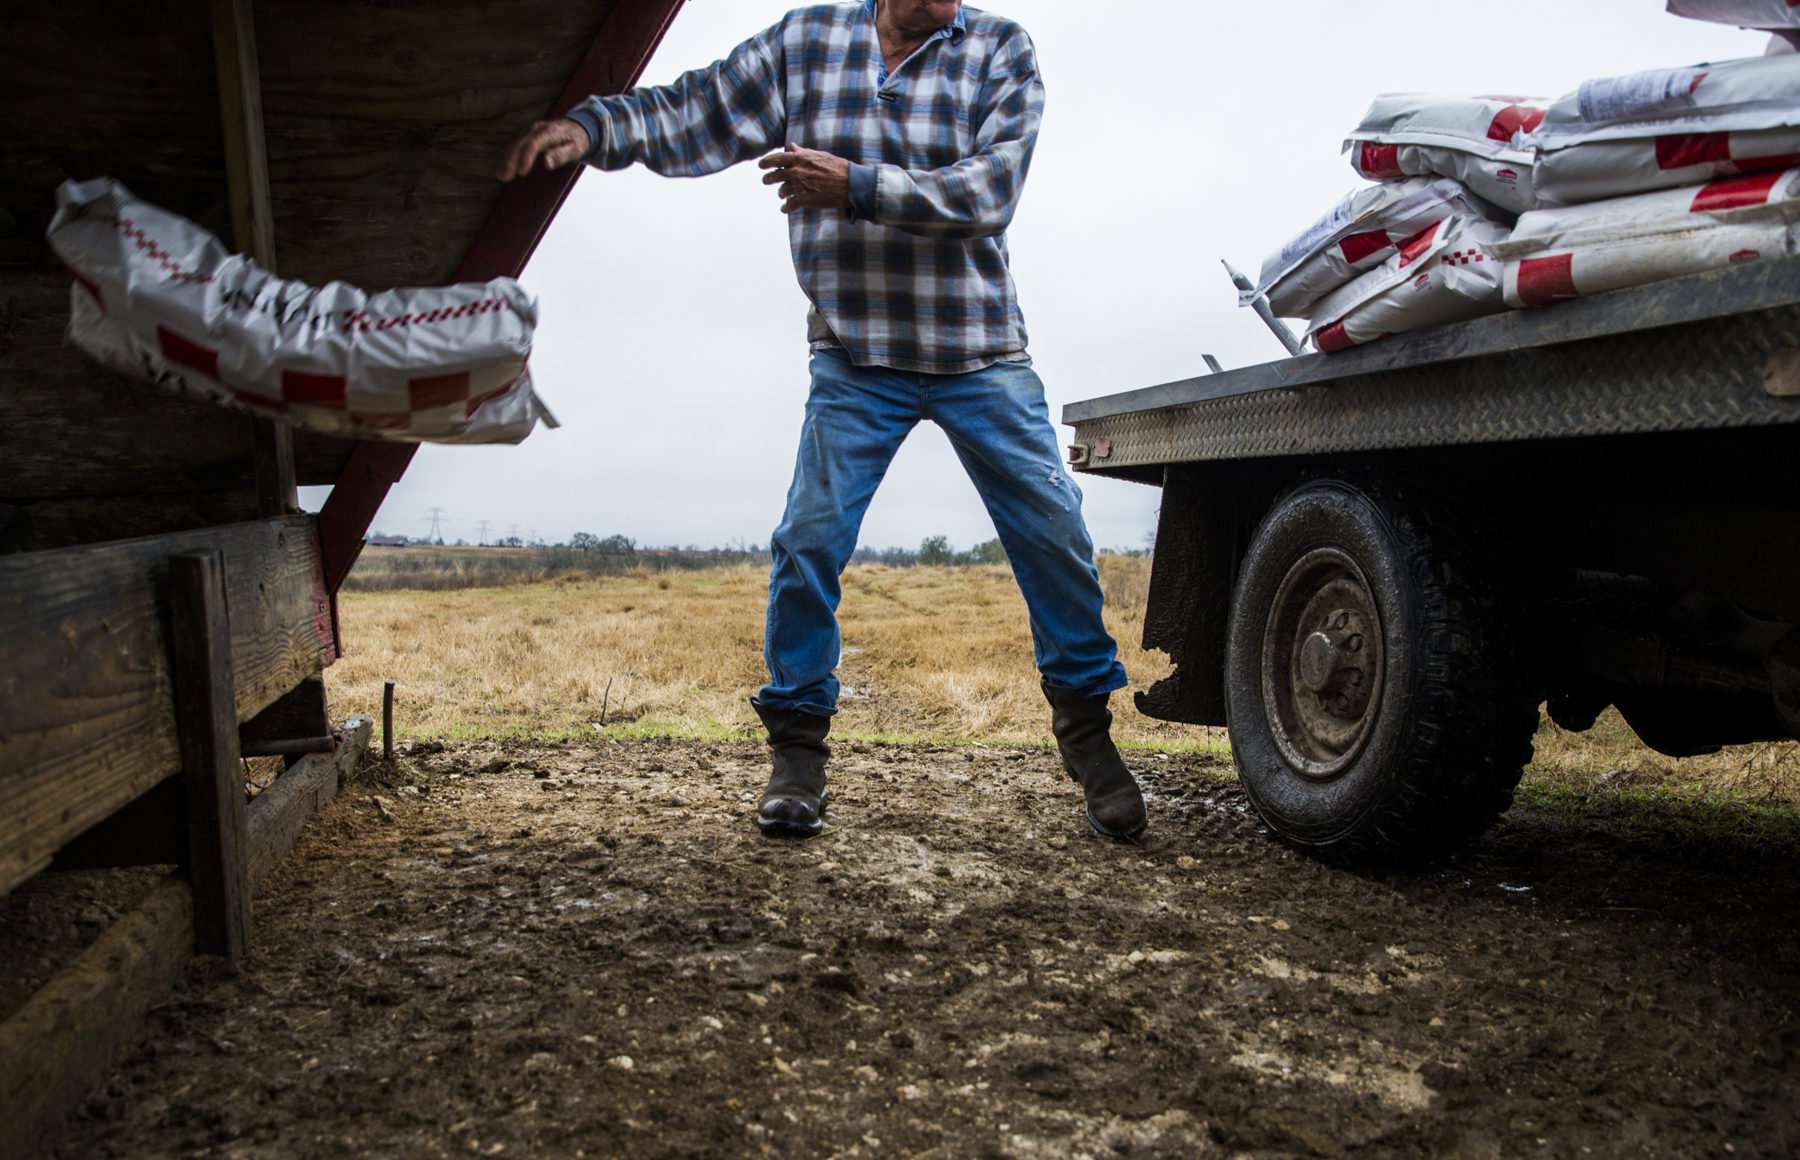 John Stoneham throws a bag of feed in to a troth for his cows at his ranch on January 18, 2017 in Grimes County. The roughly 1,000-acre ranch is in the proposed path of a high speed rail line. If the rail is built, Stoneham could lose about 50 acres of land in the middle of his property, limiting his access to grazing pastures.